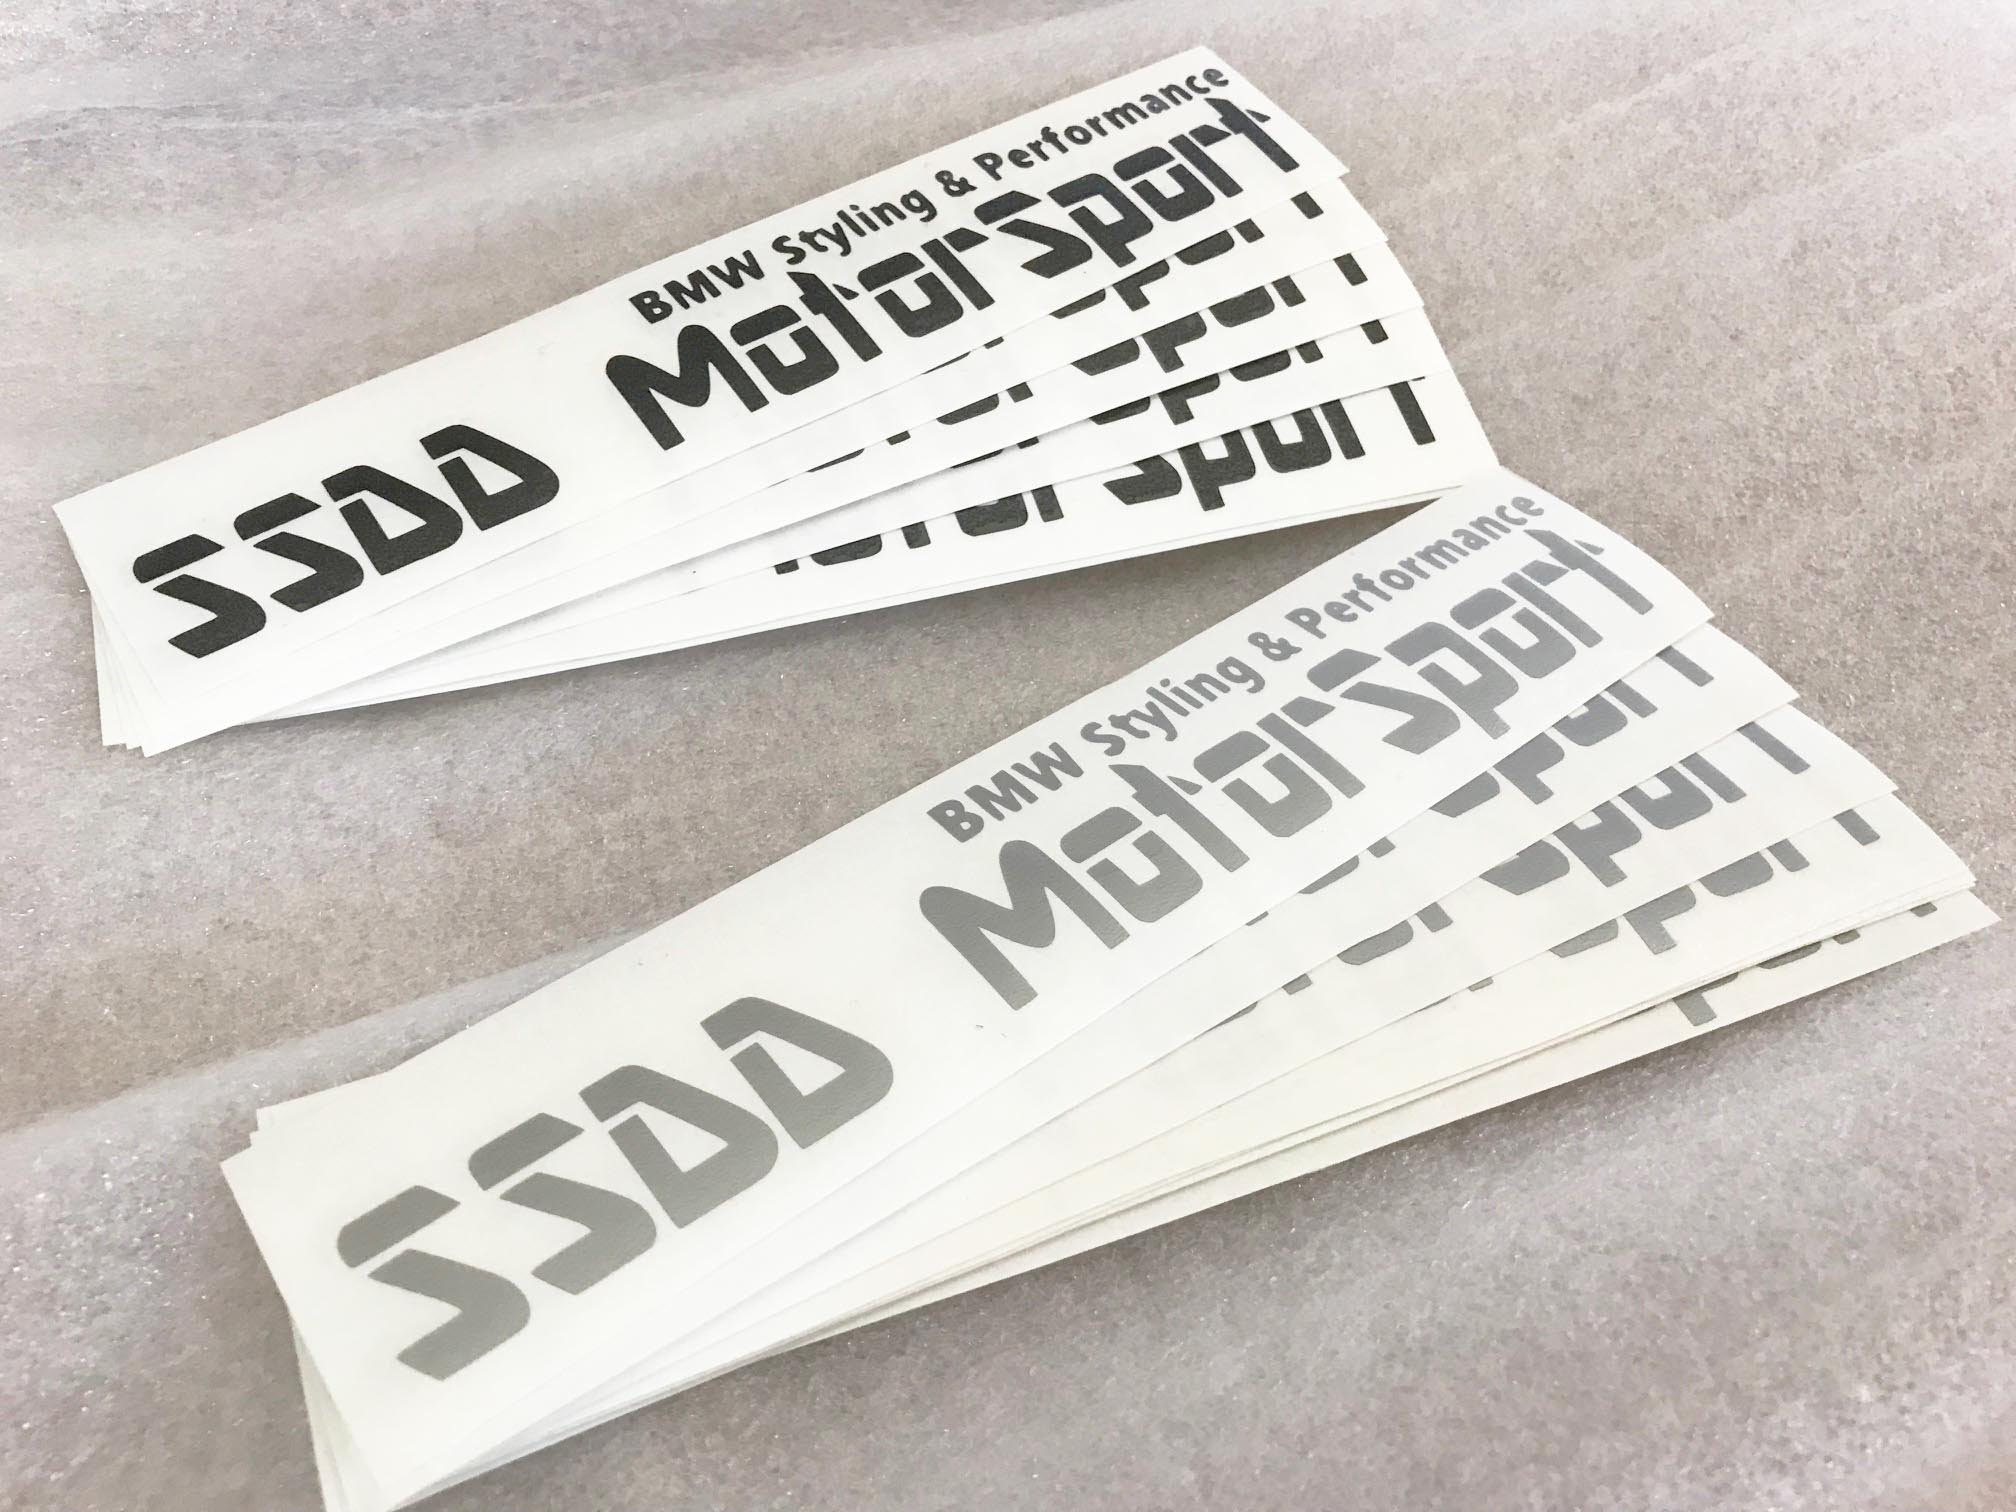 ssdd-stickers-silver-and-black.jpg